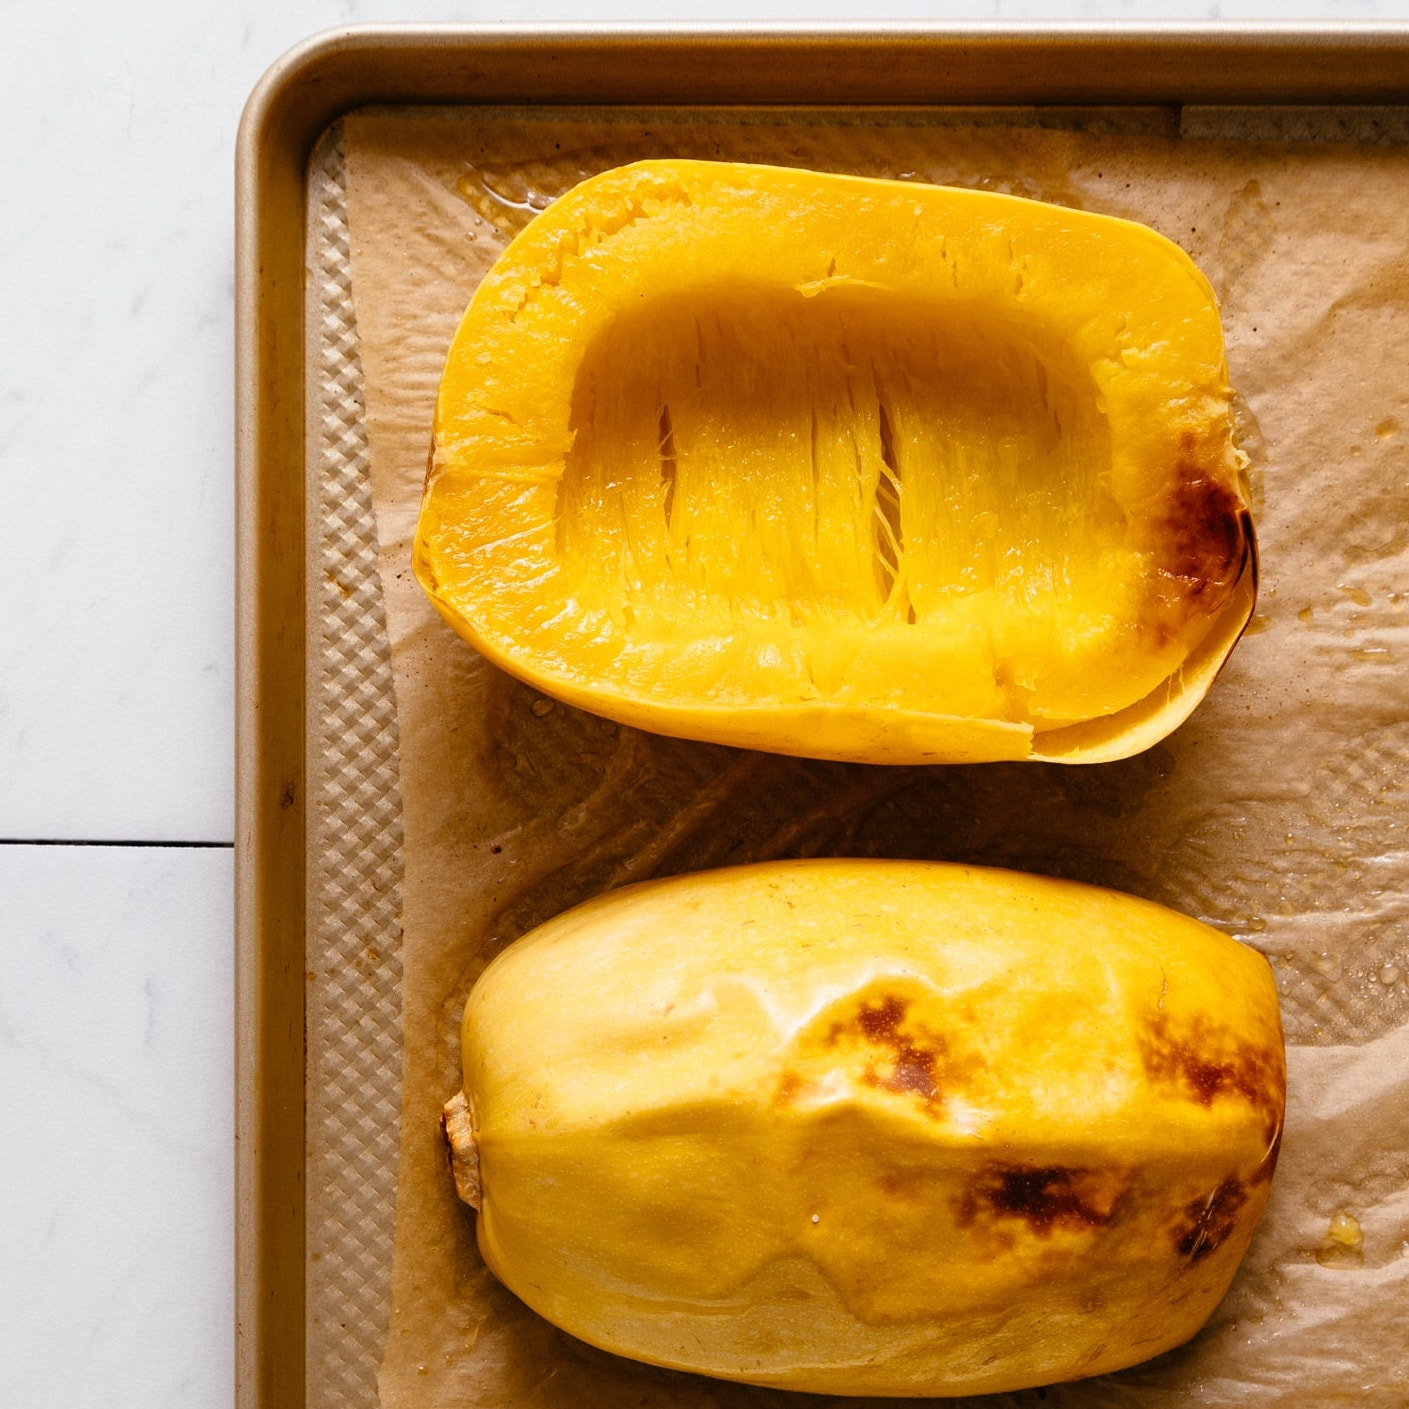 Perfectly roasted spaghetti squash made with our How to Roast Spaghetti Squash Tutorial